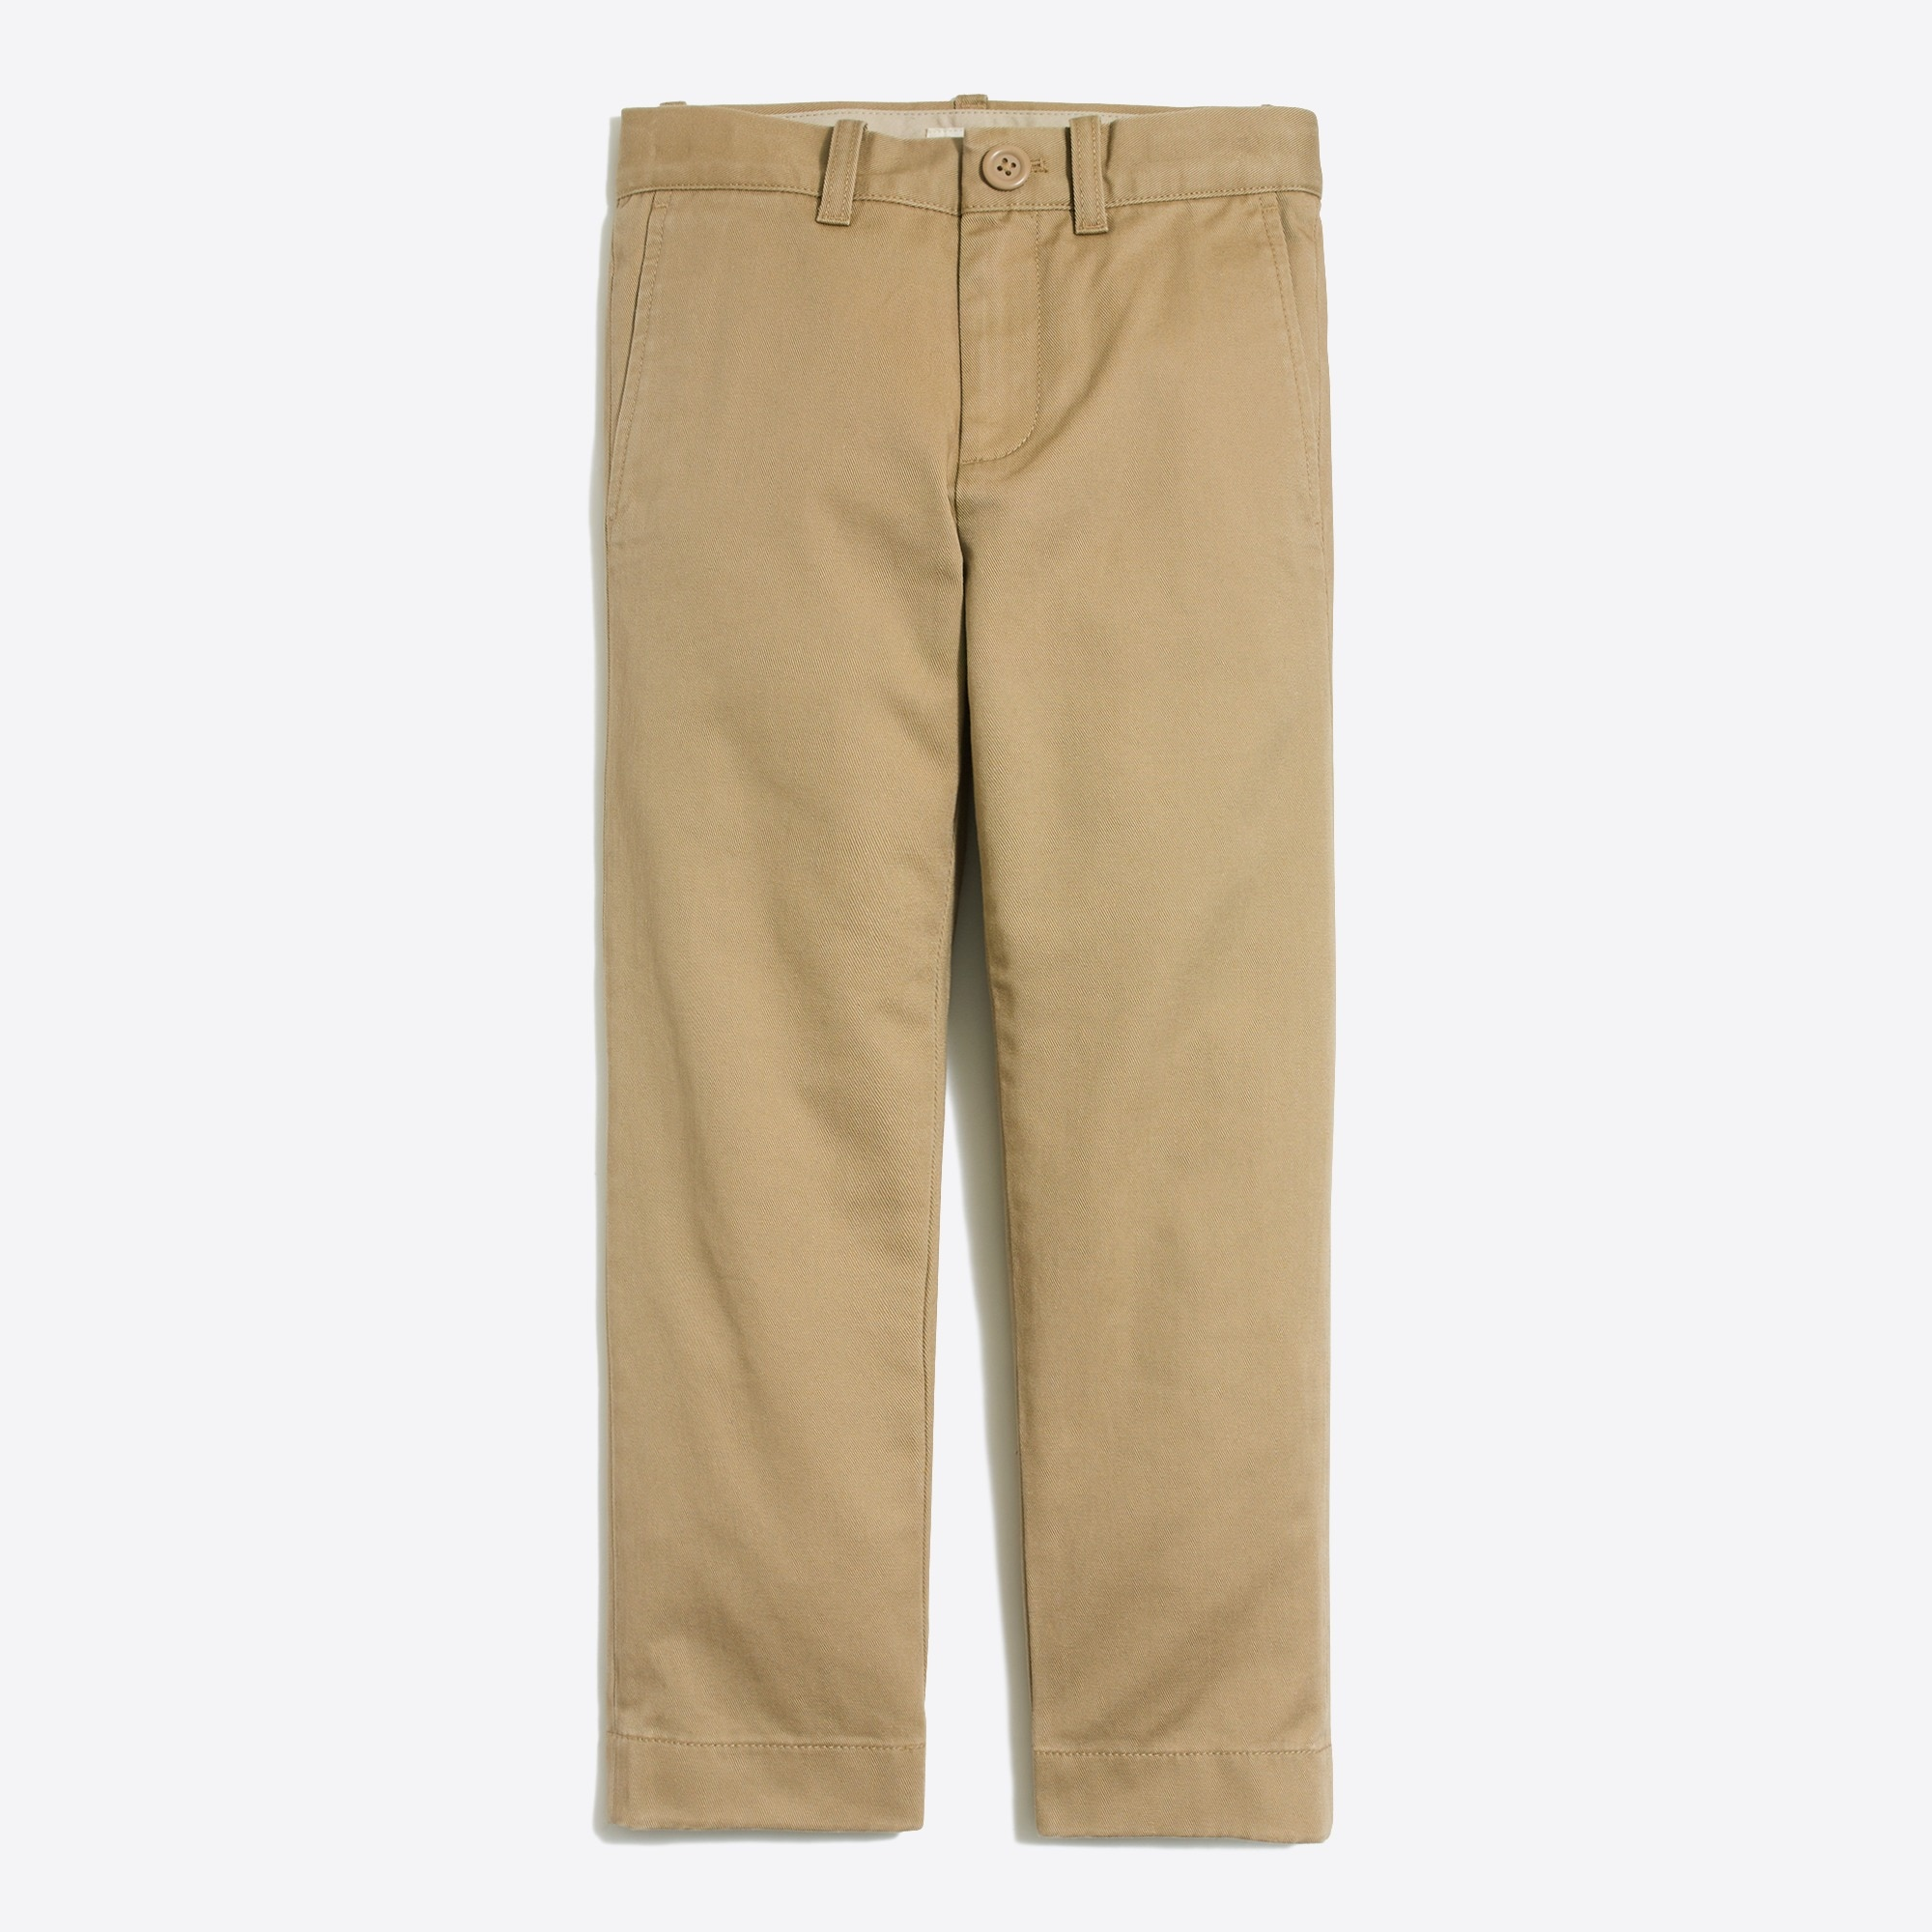 Boys' slim chino factoryboys online exclusives c